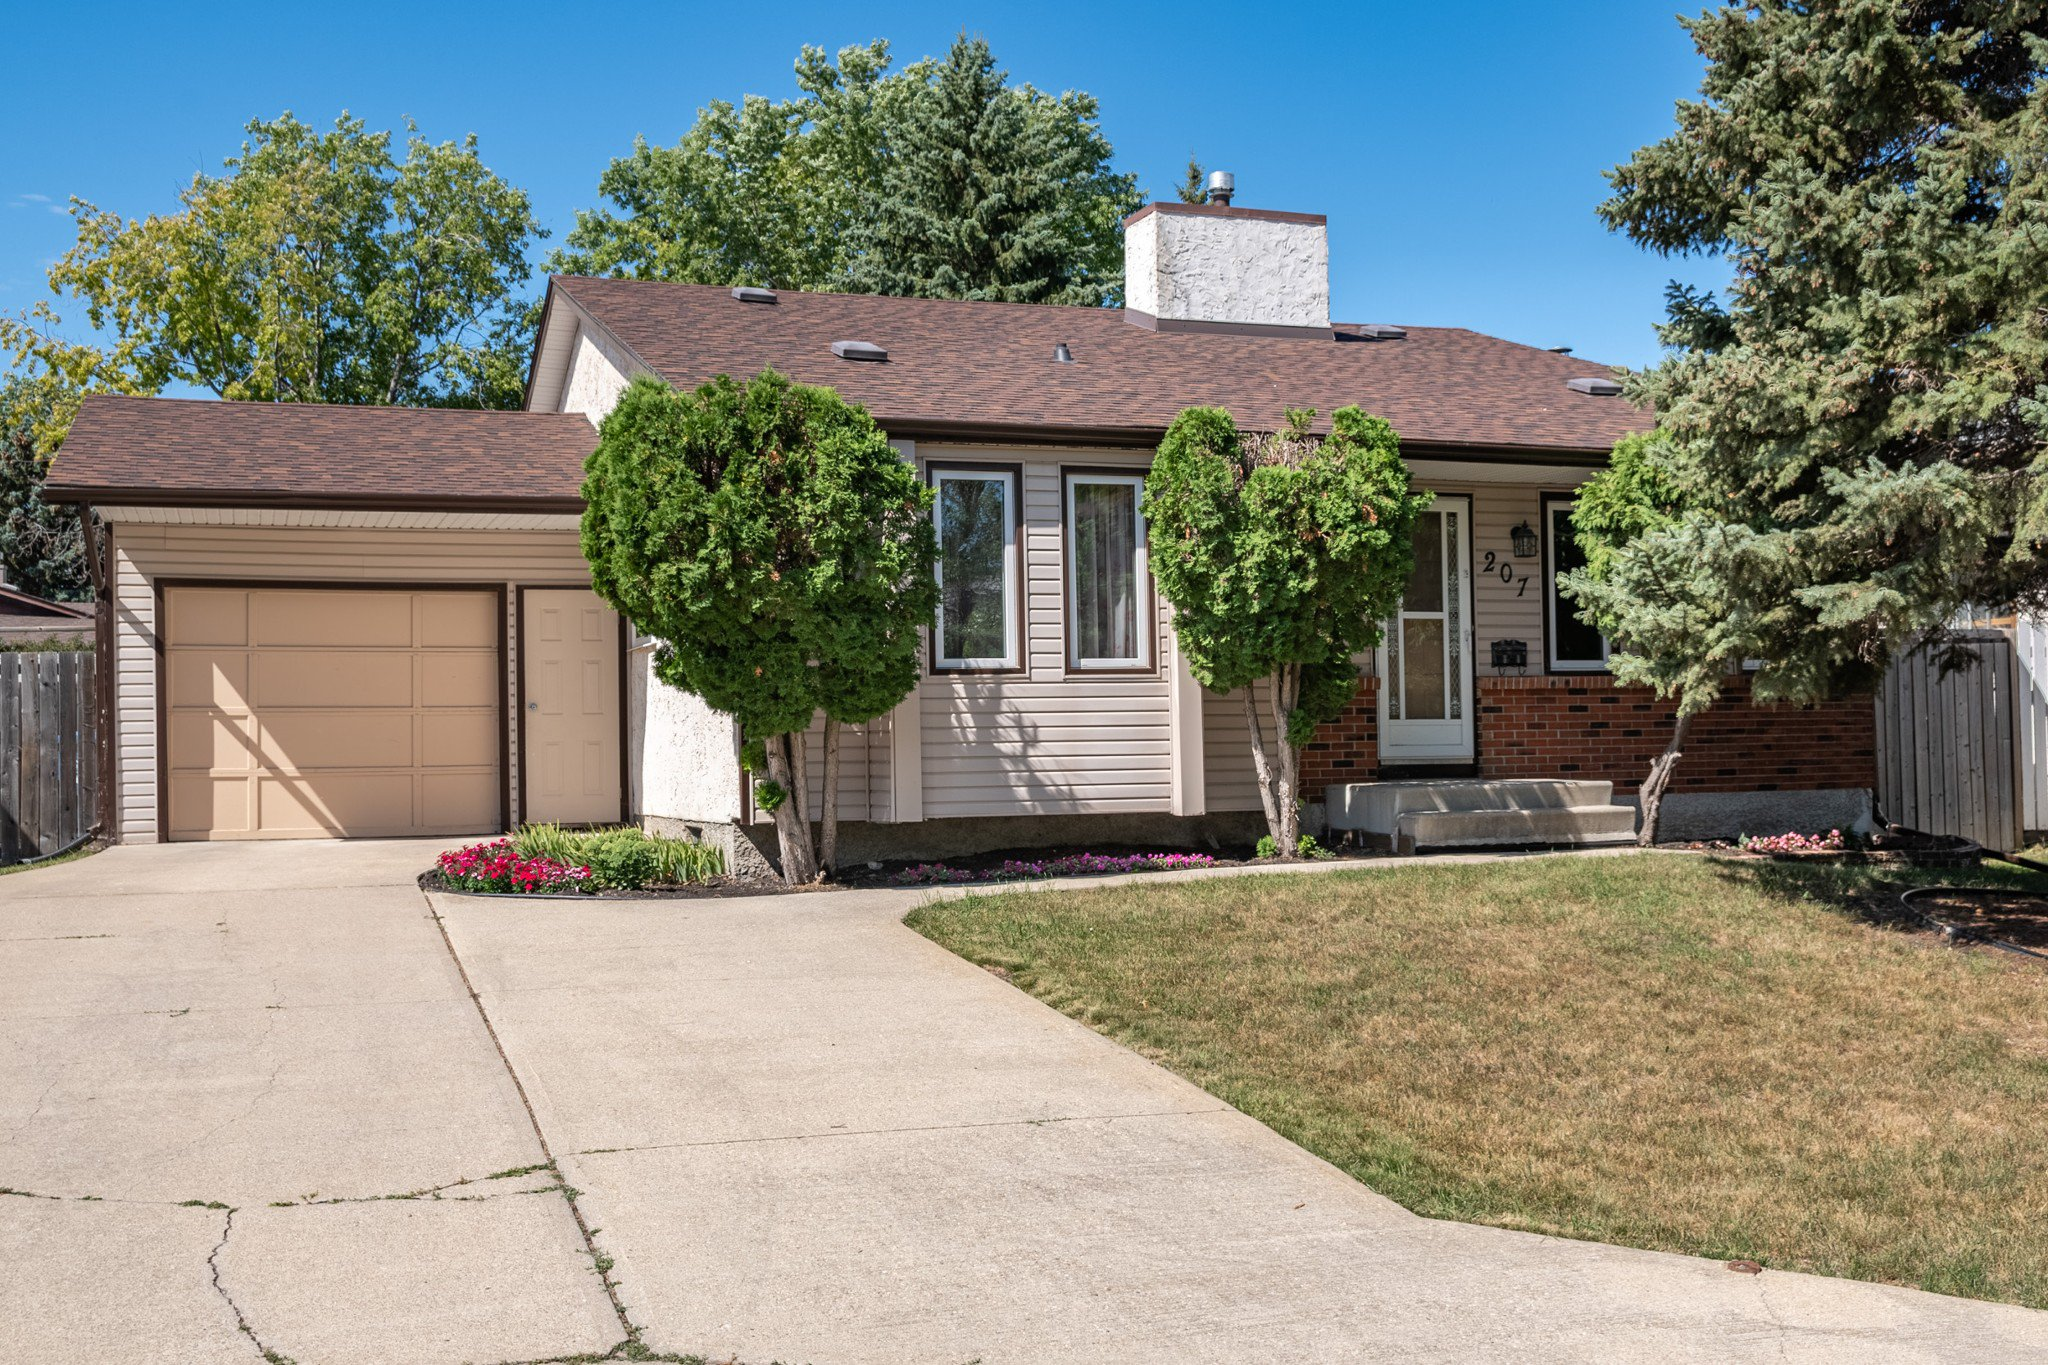 PERFECT FAMILY HOME in a great location in Richmond West. Beautifully maintained 3 bedroom 4-level split home with 14x20 single attached garage, nicely landscaped fenced rear yard with deck & vinyl storage shed.